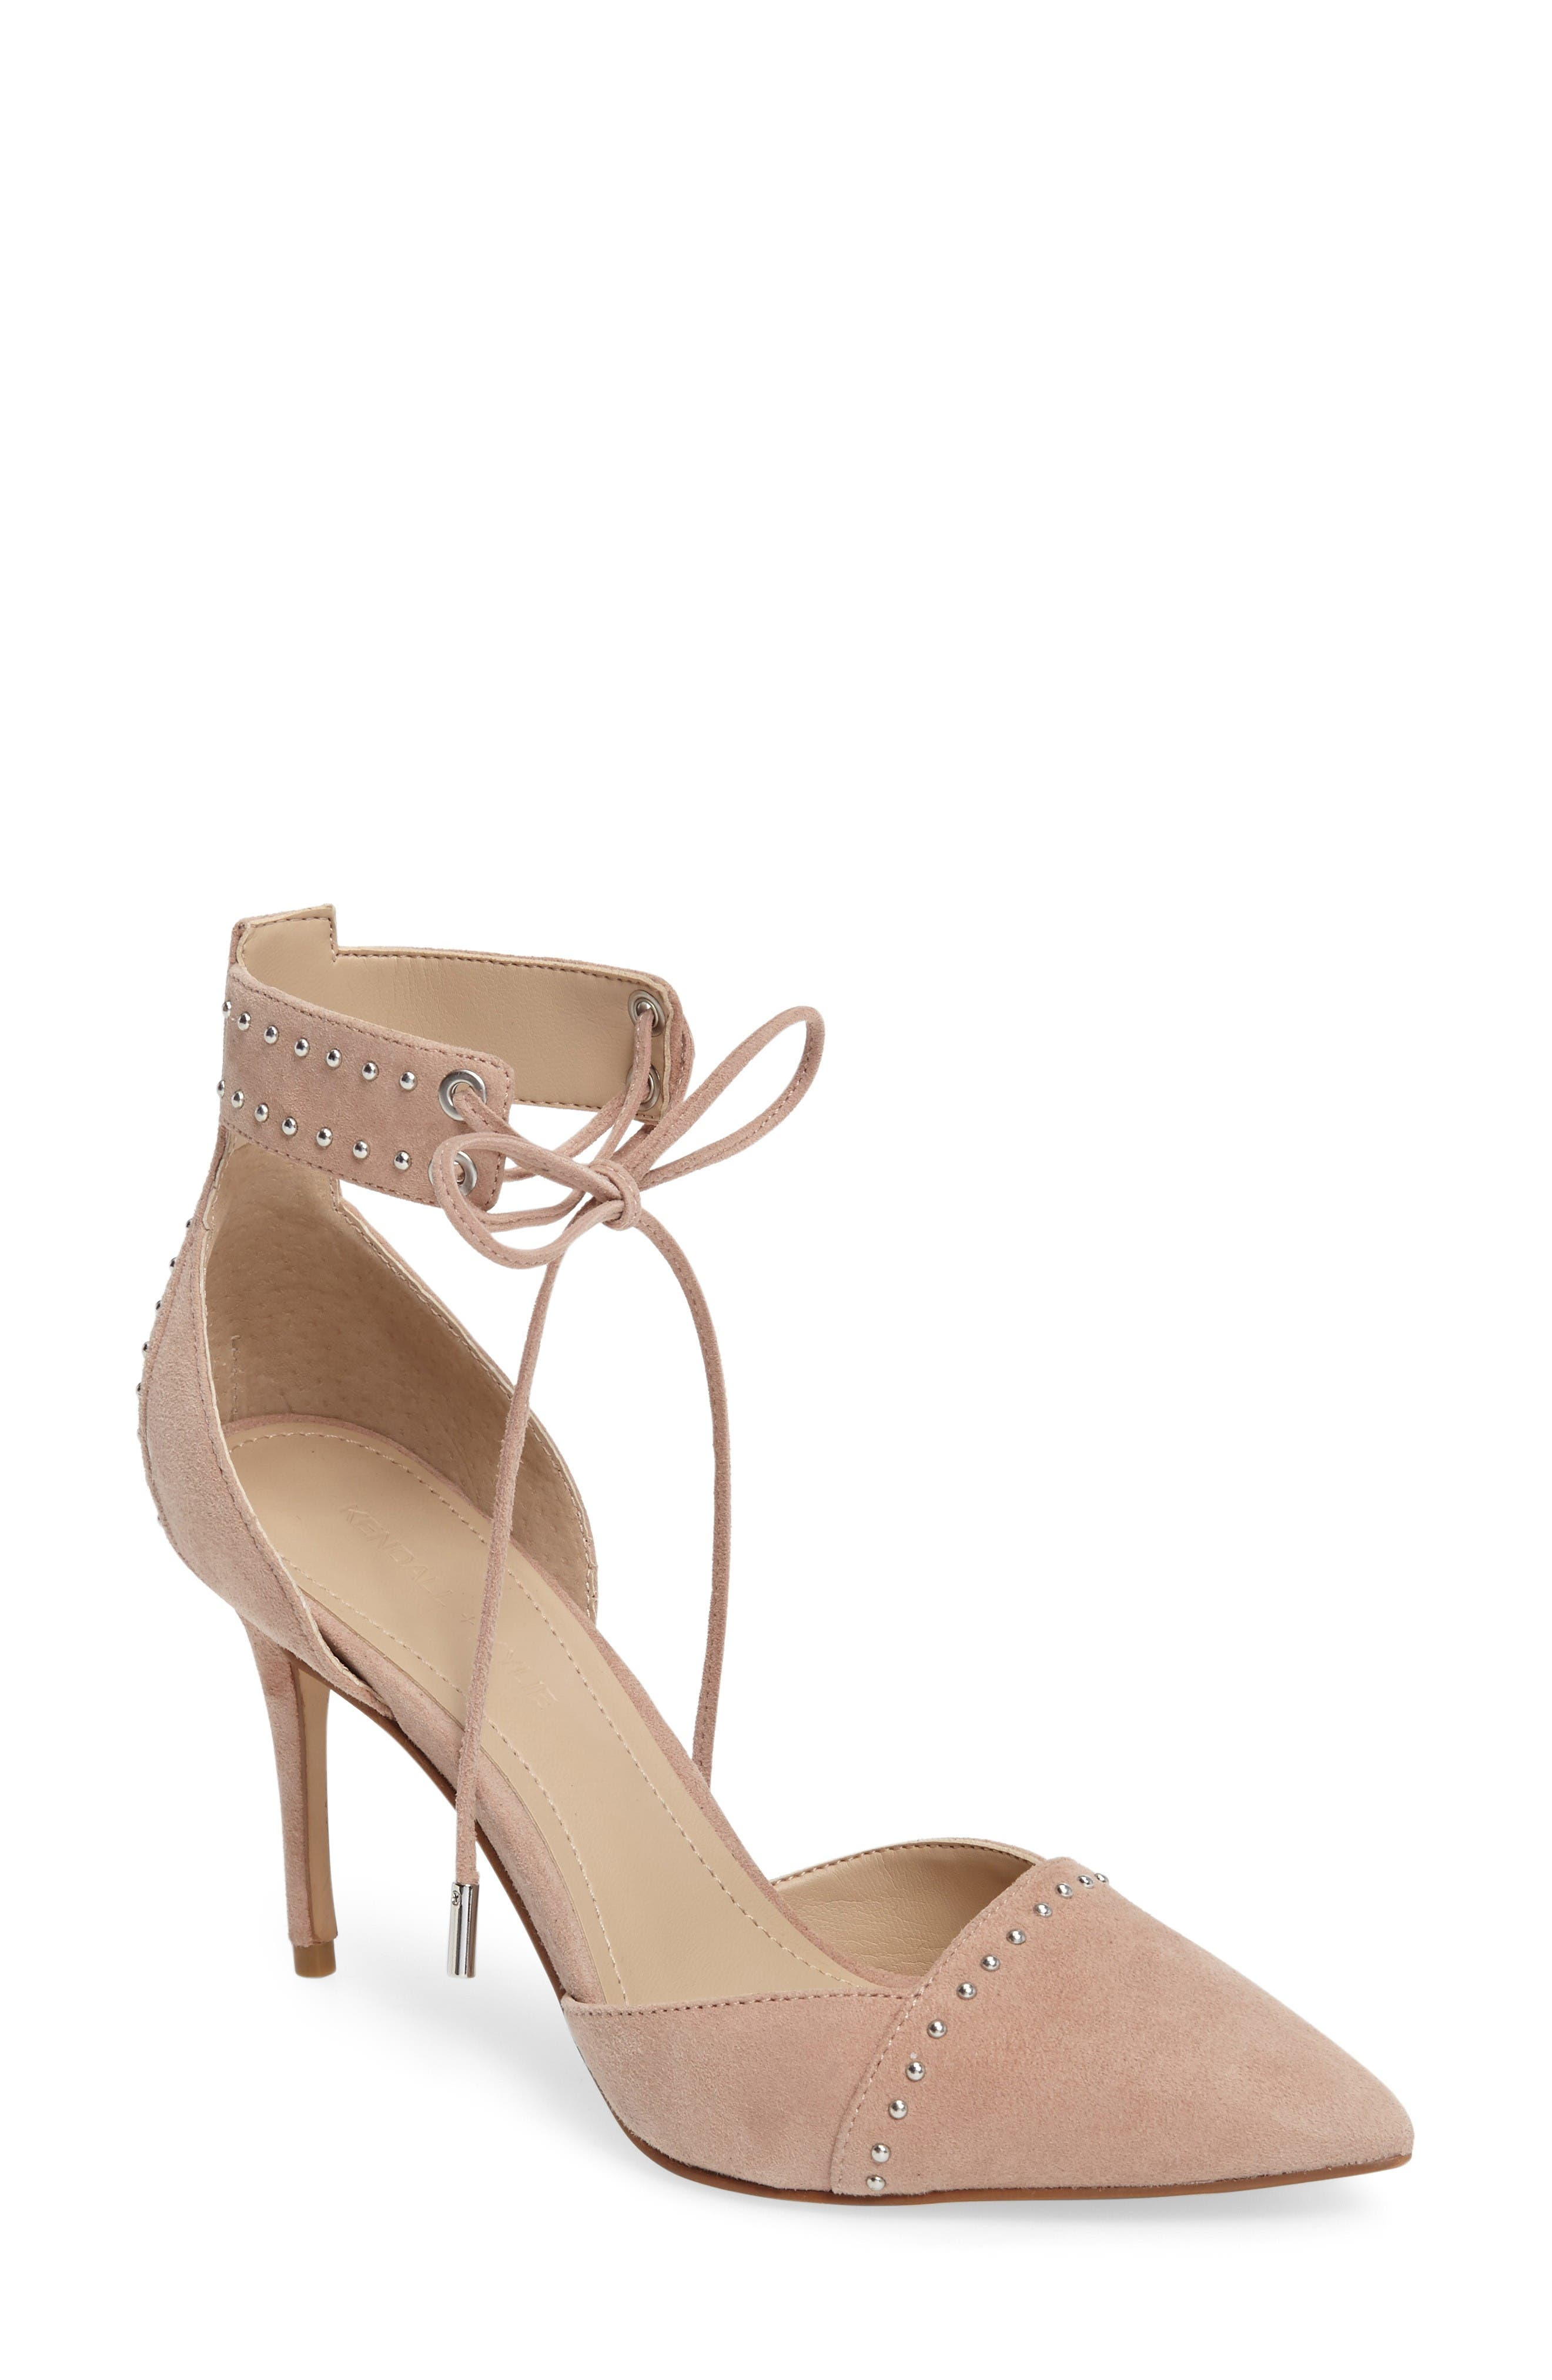 Alternate Image 1 Selected - KENDALL + KYLIE Cora Ankle Strap Pump (Women)